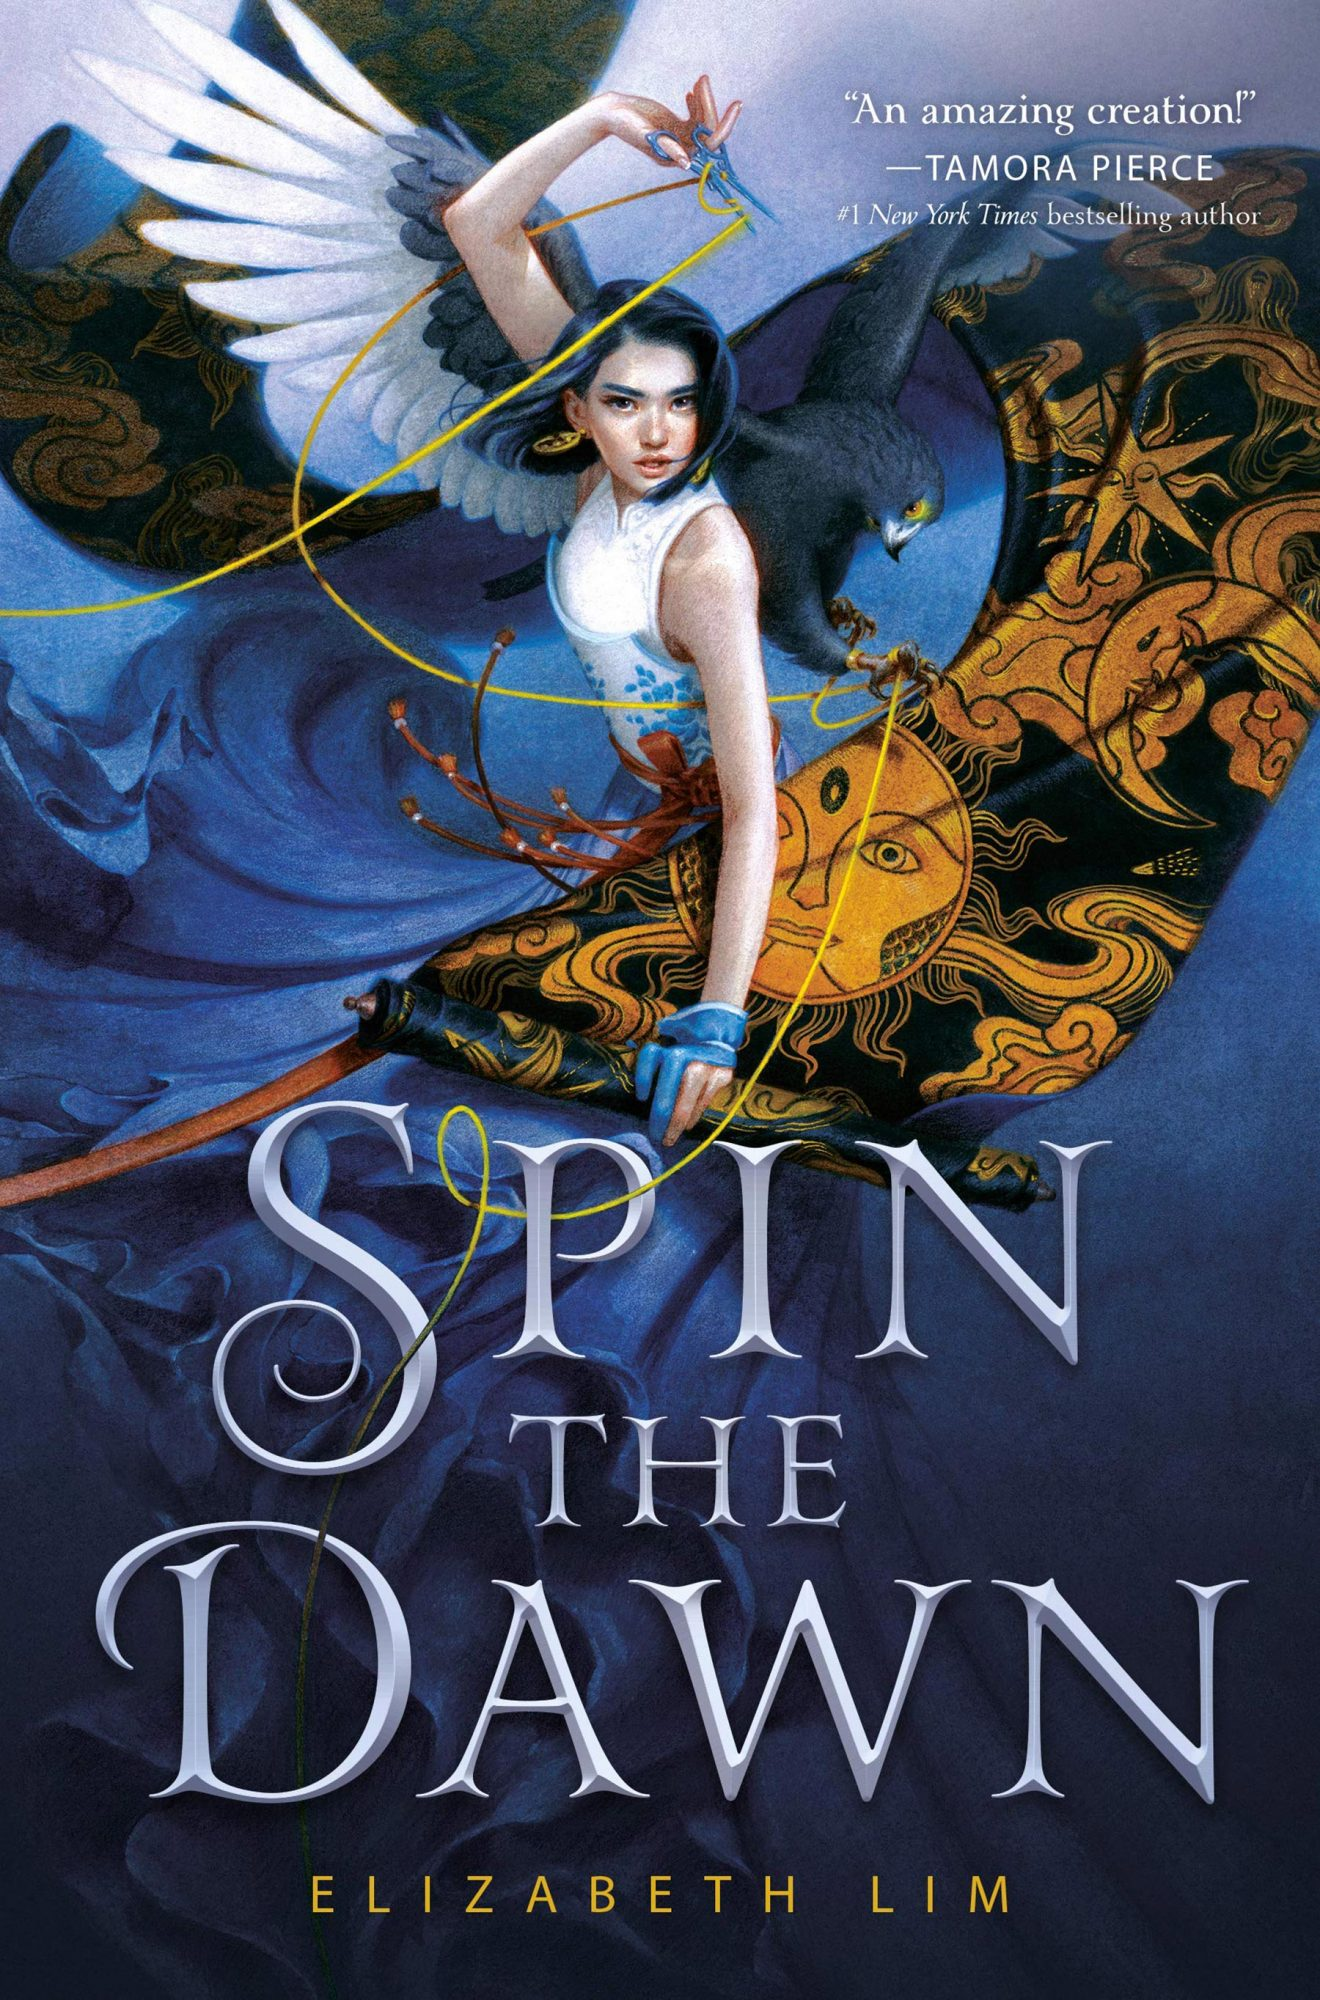 Spin the Dawn, by Elizabeth Lim